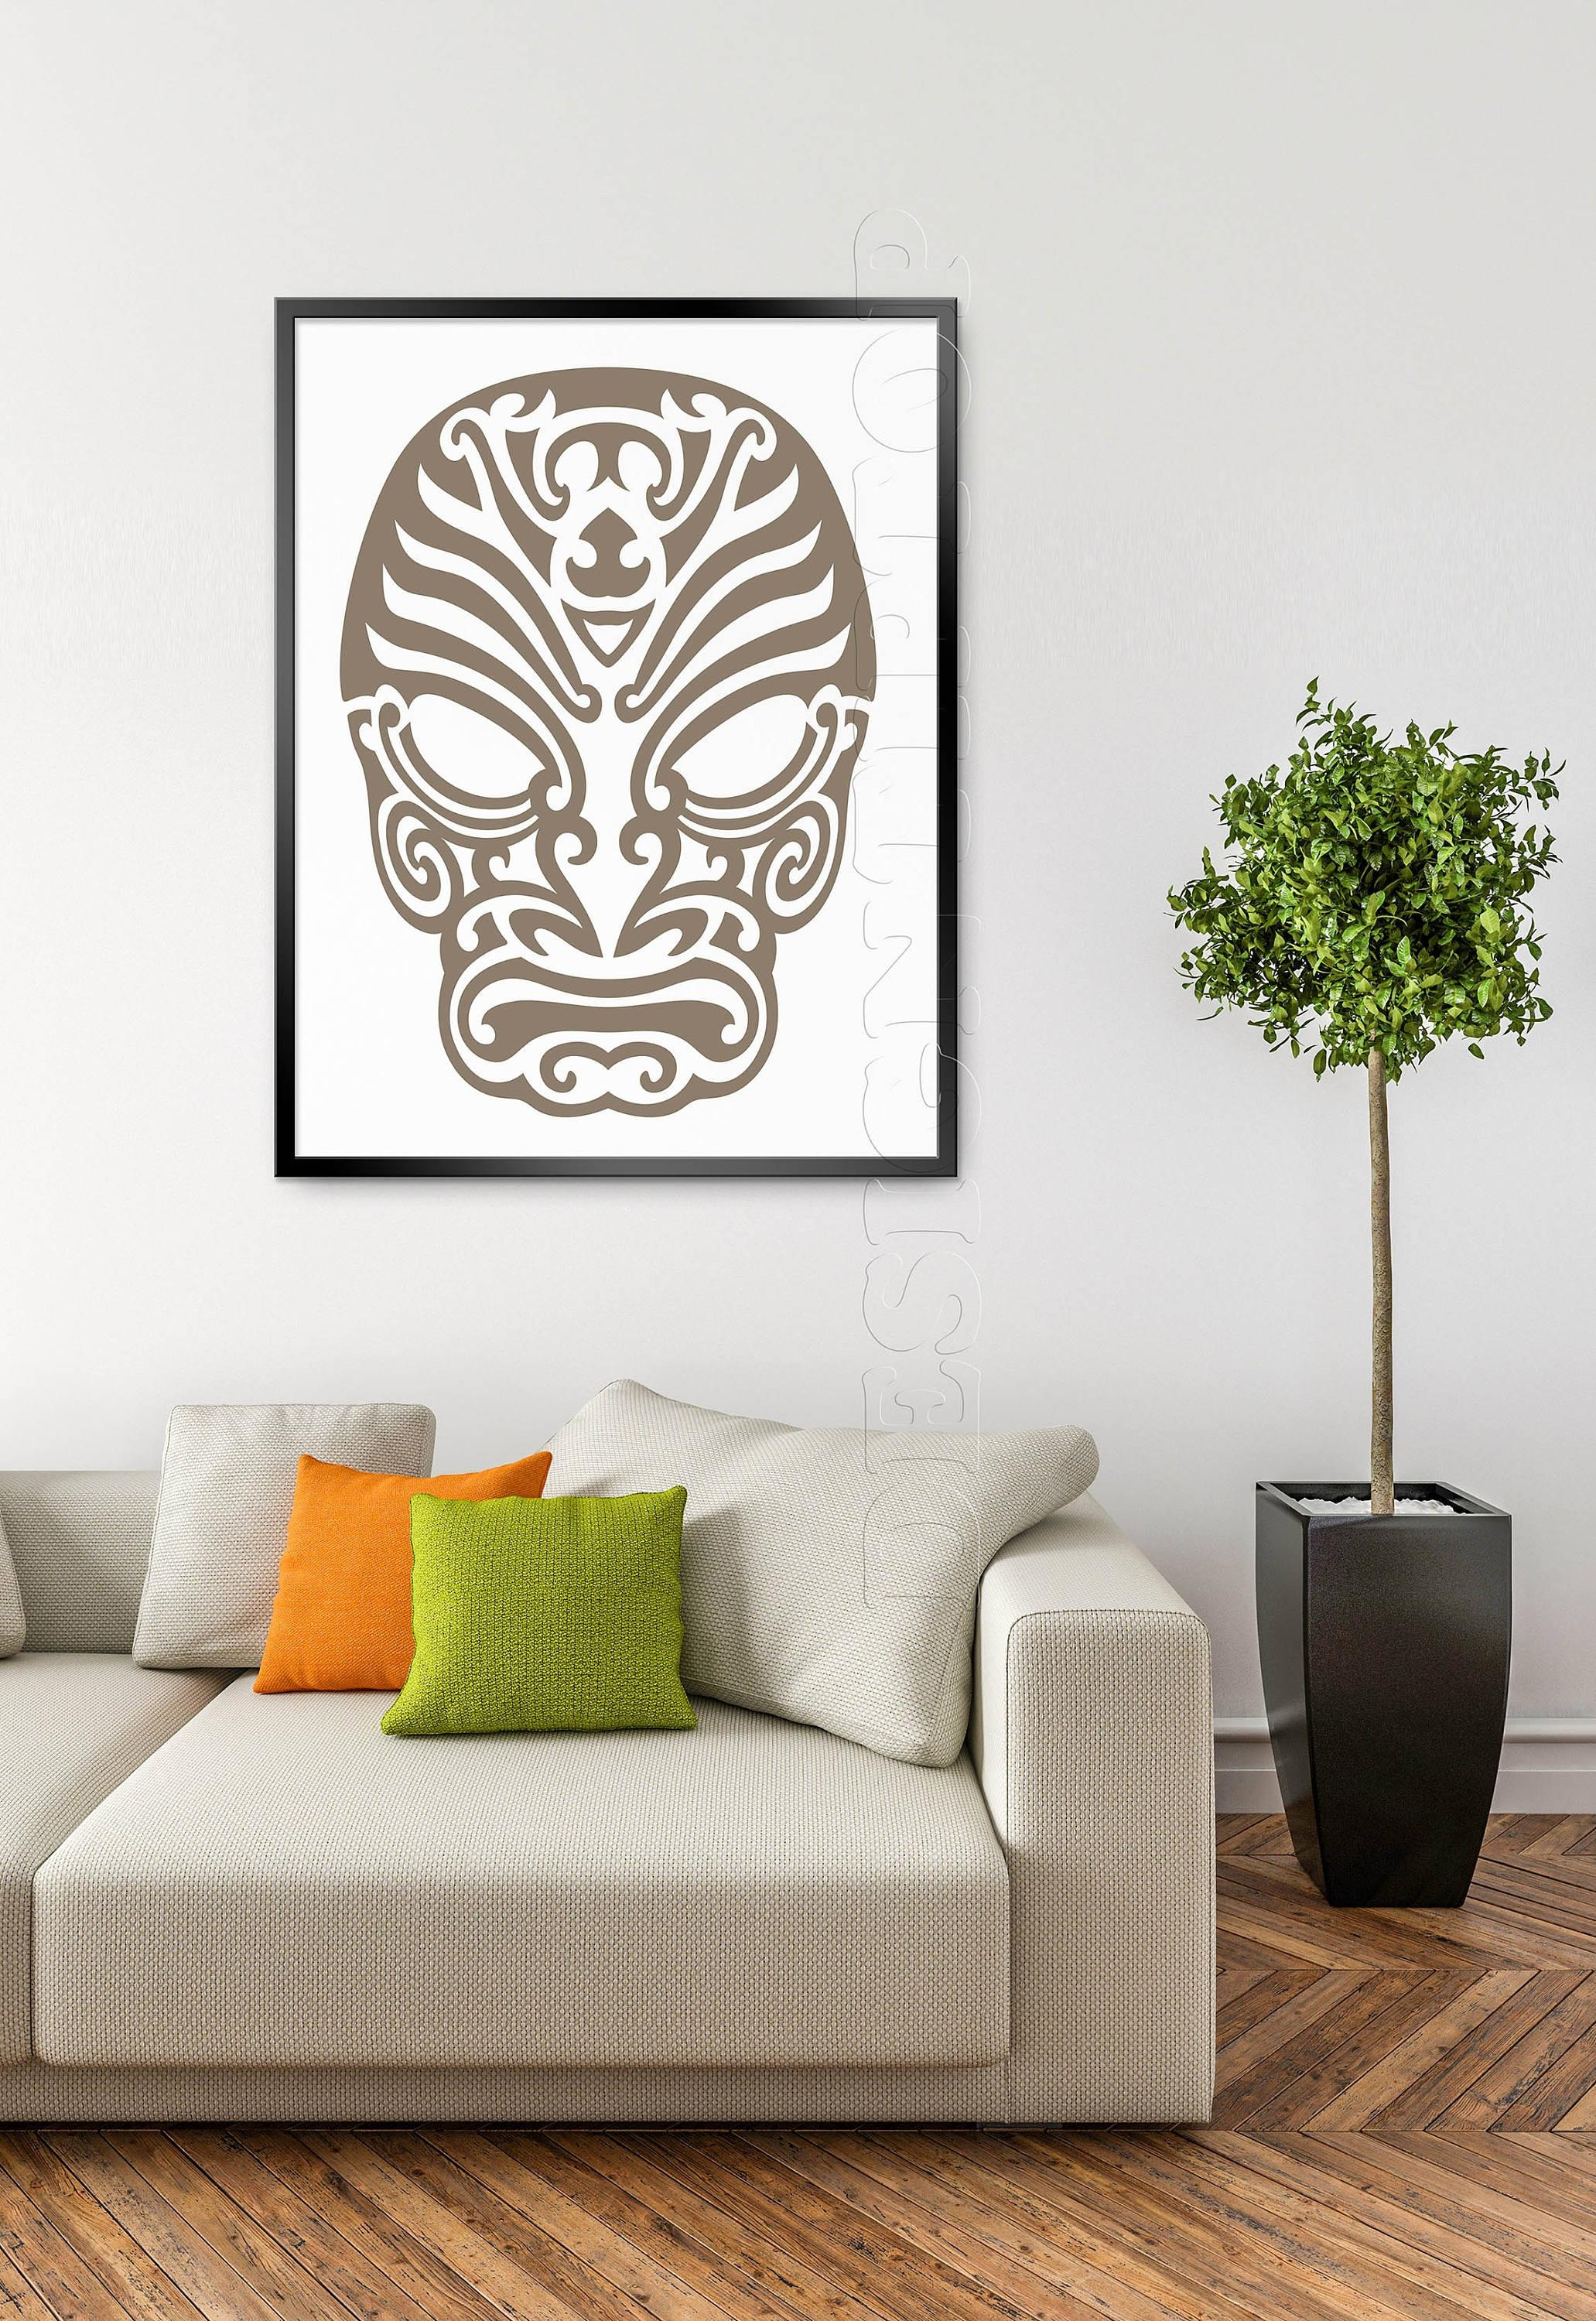 Mask Svg, Polynesian Tattoo, Tshirt Design, Cuttable Svg, Vinyl Regarding Polynesian Wall Art (View 12 of 20)